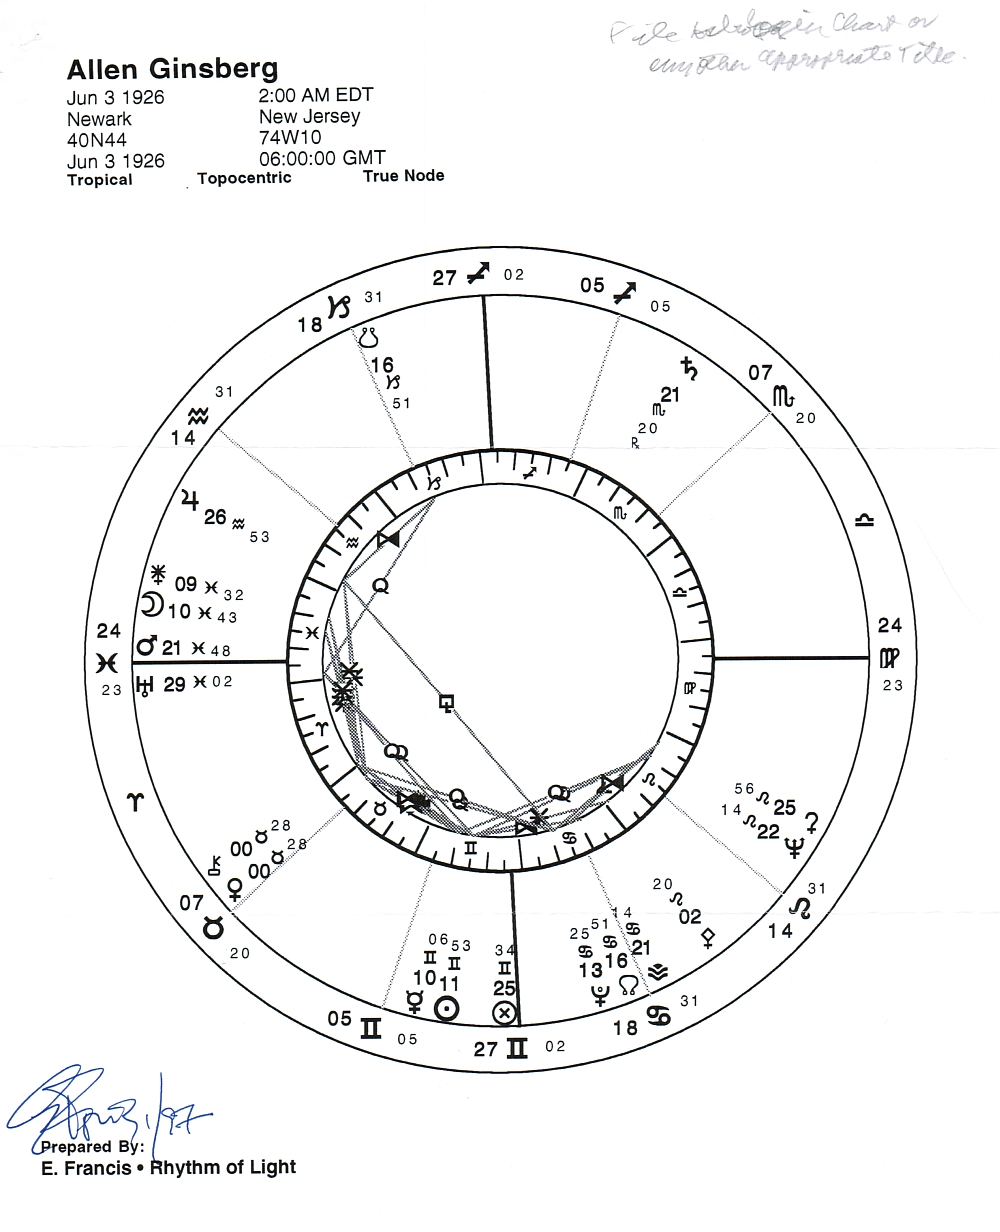 The allen ginsberg project allens astrological chart allens astrological chart nvjuhfo Gallery